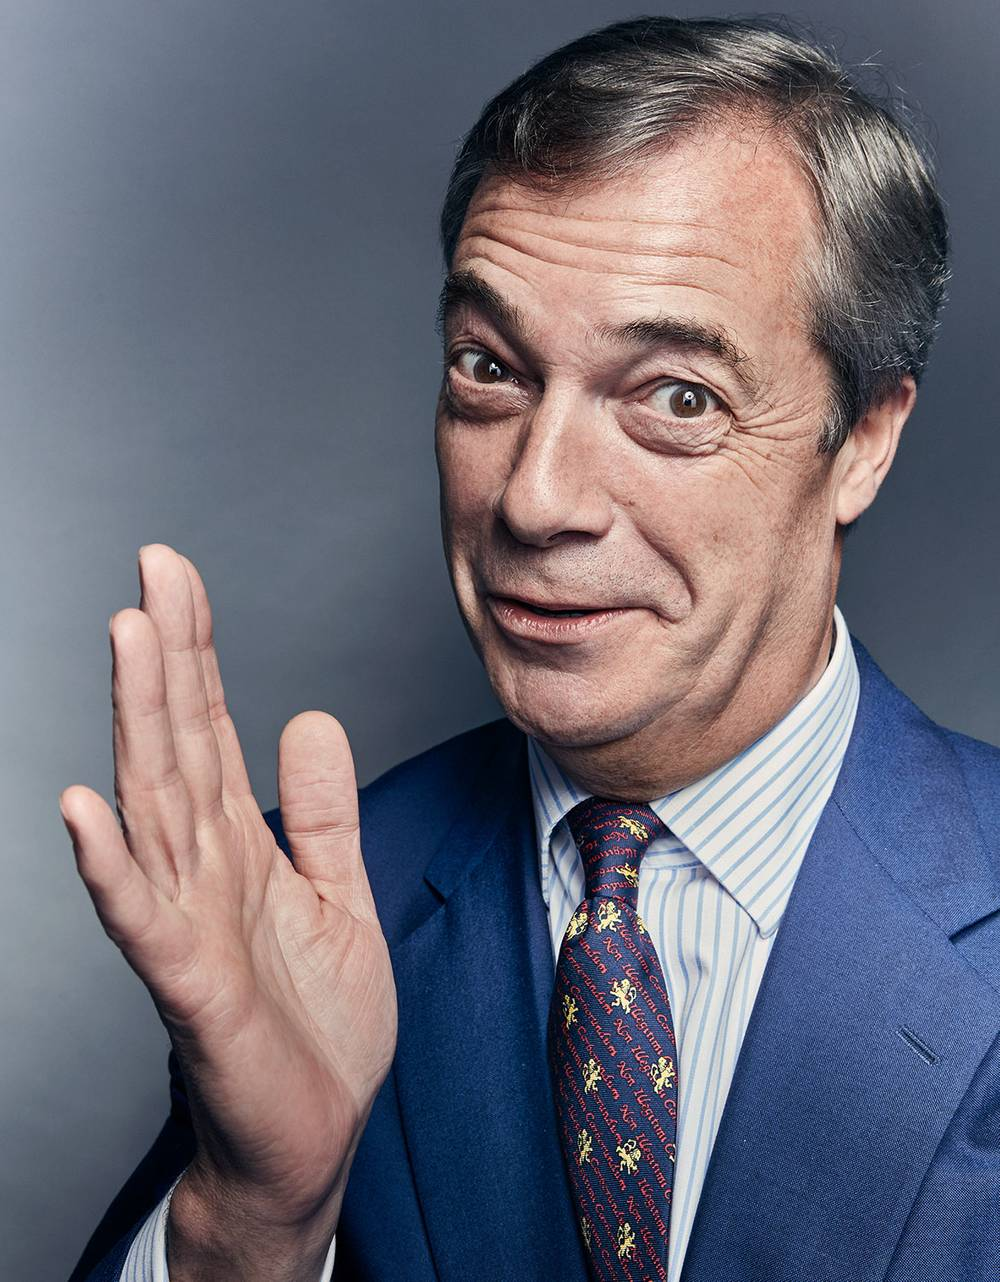 Nigel Farage 89_V1.jpg